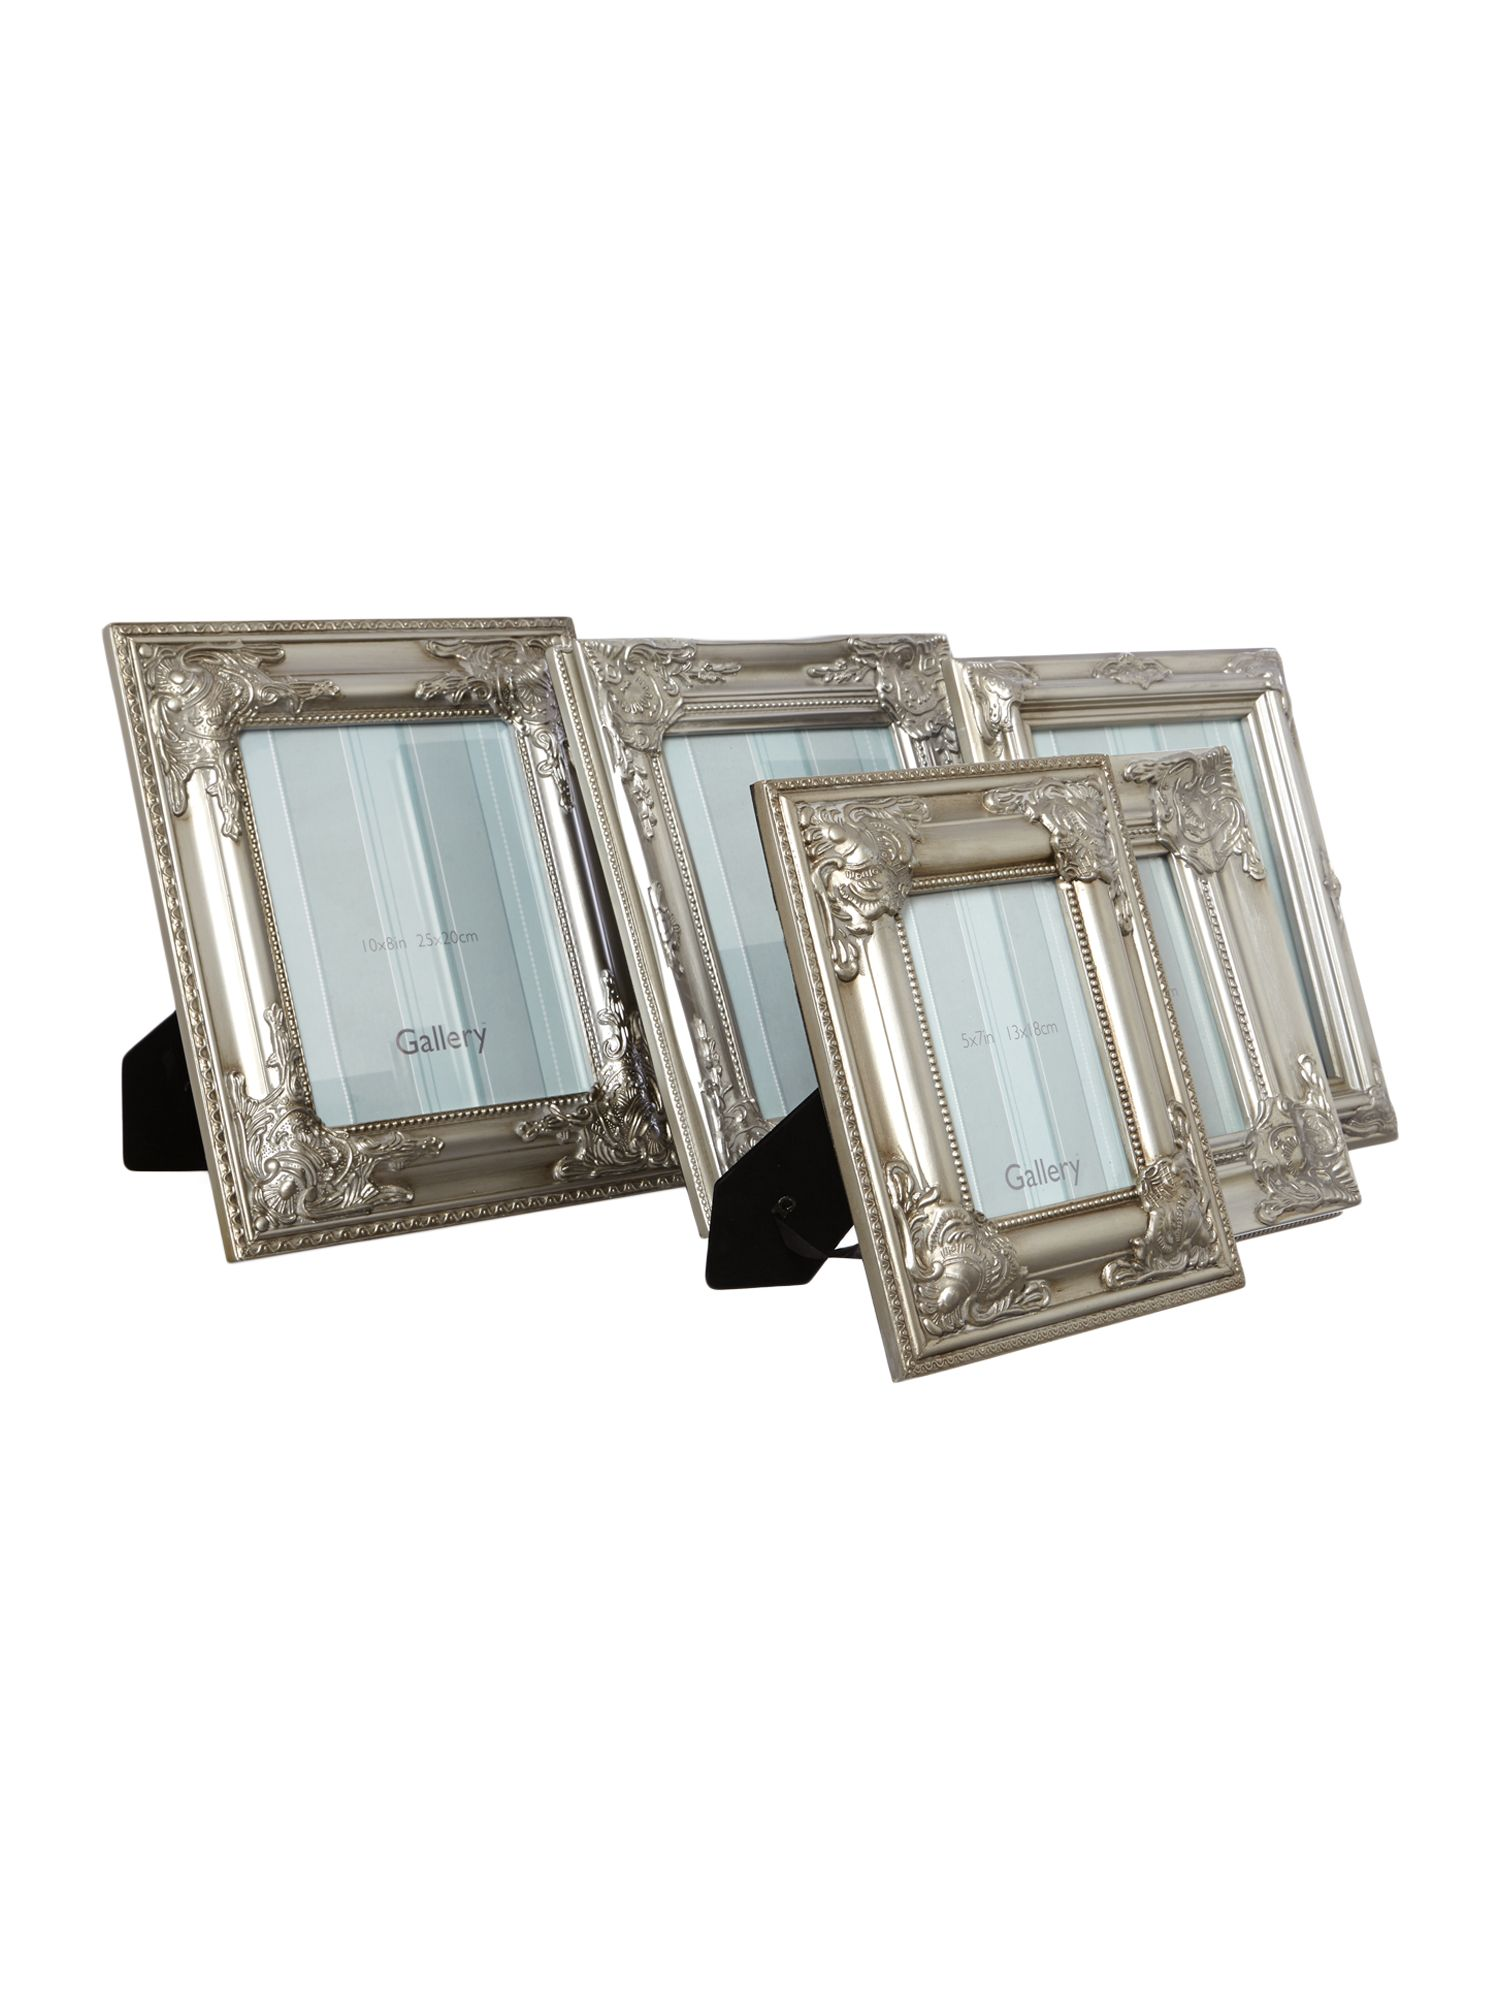 Set of 5 Lansdale Scatter Frames Silver